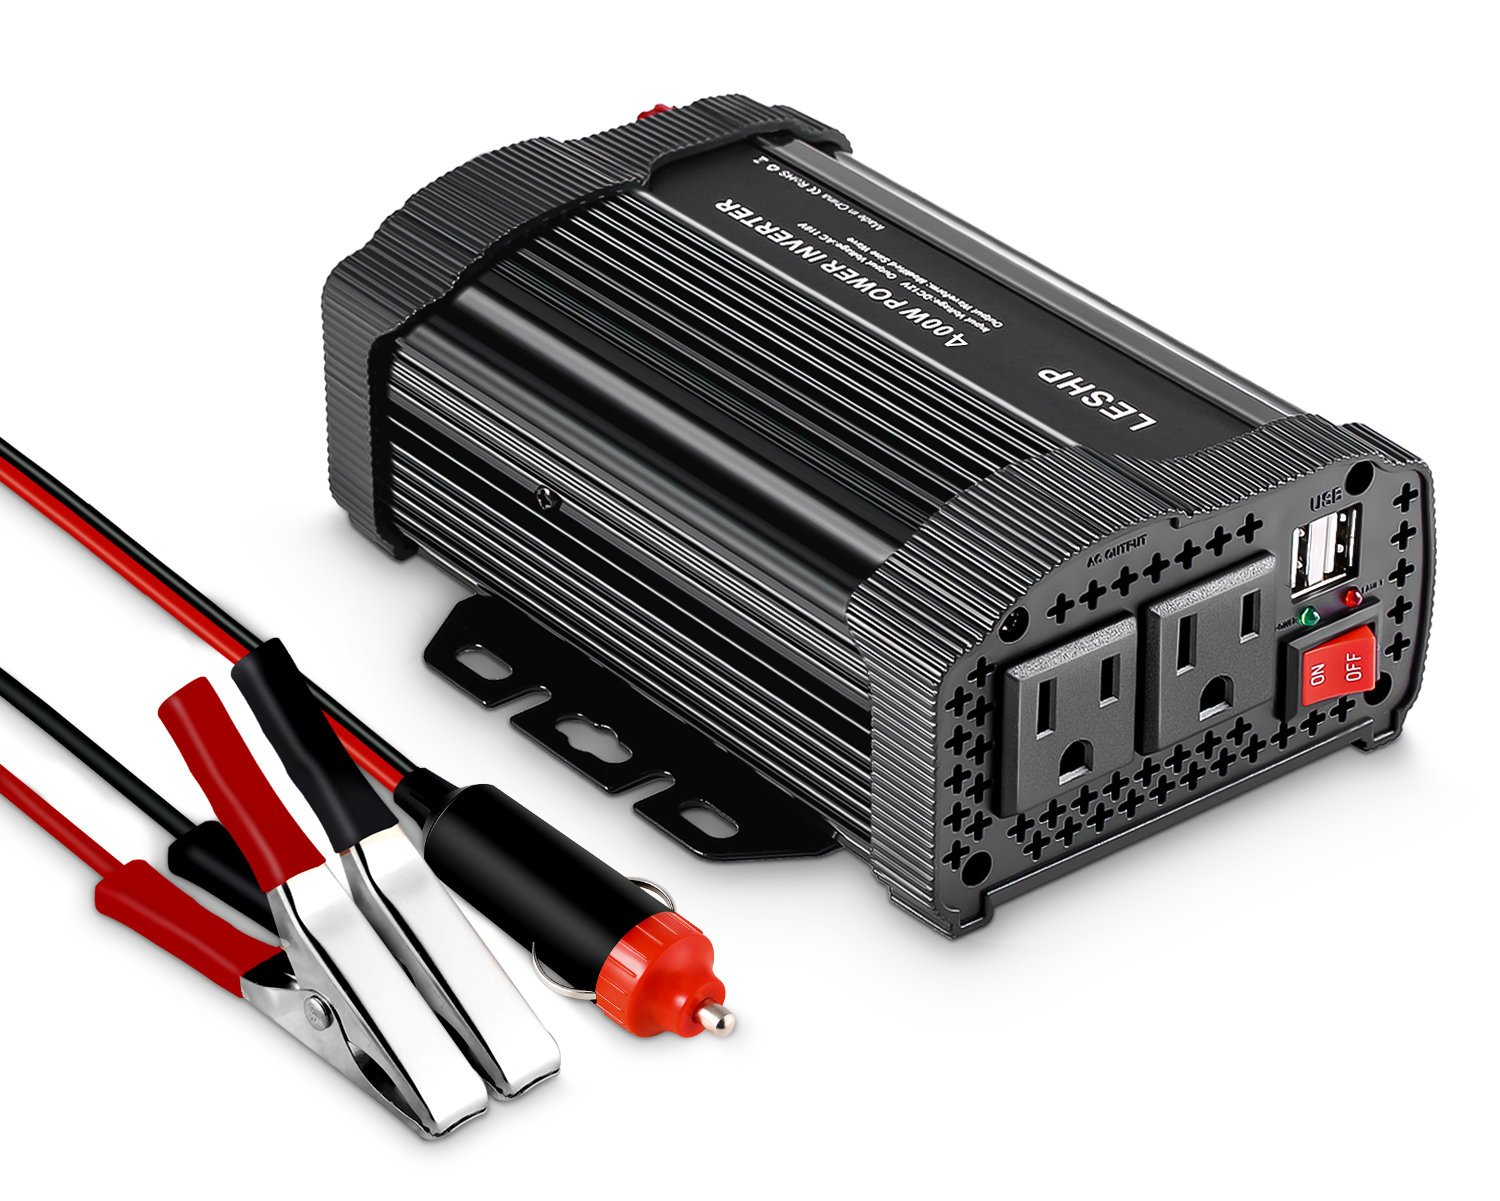 LESHP 400W Power Inverter DC 12V to AC 110V Car Adapter with 4.8A 2 USB Charging Ports by LESHP (Image #2)